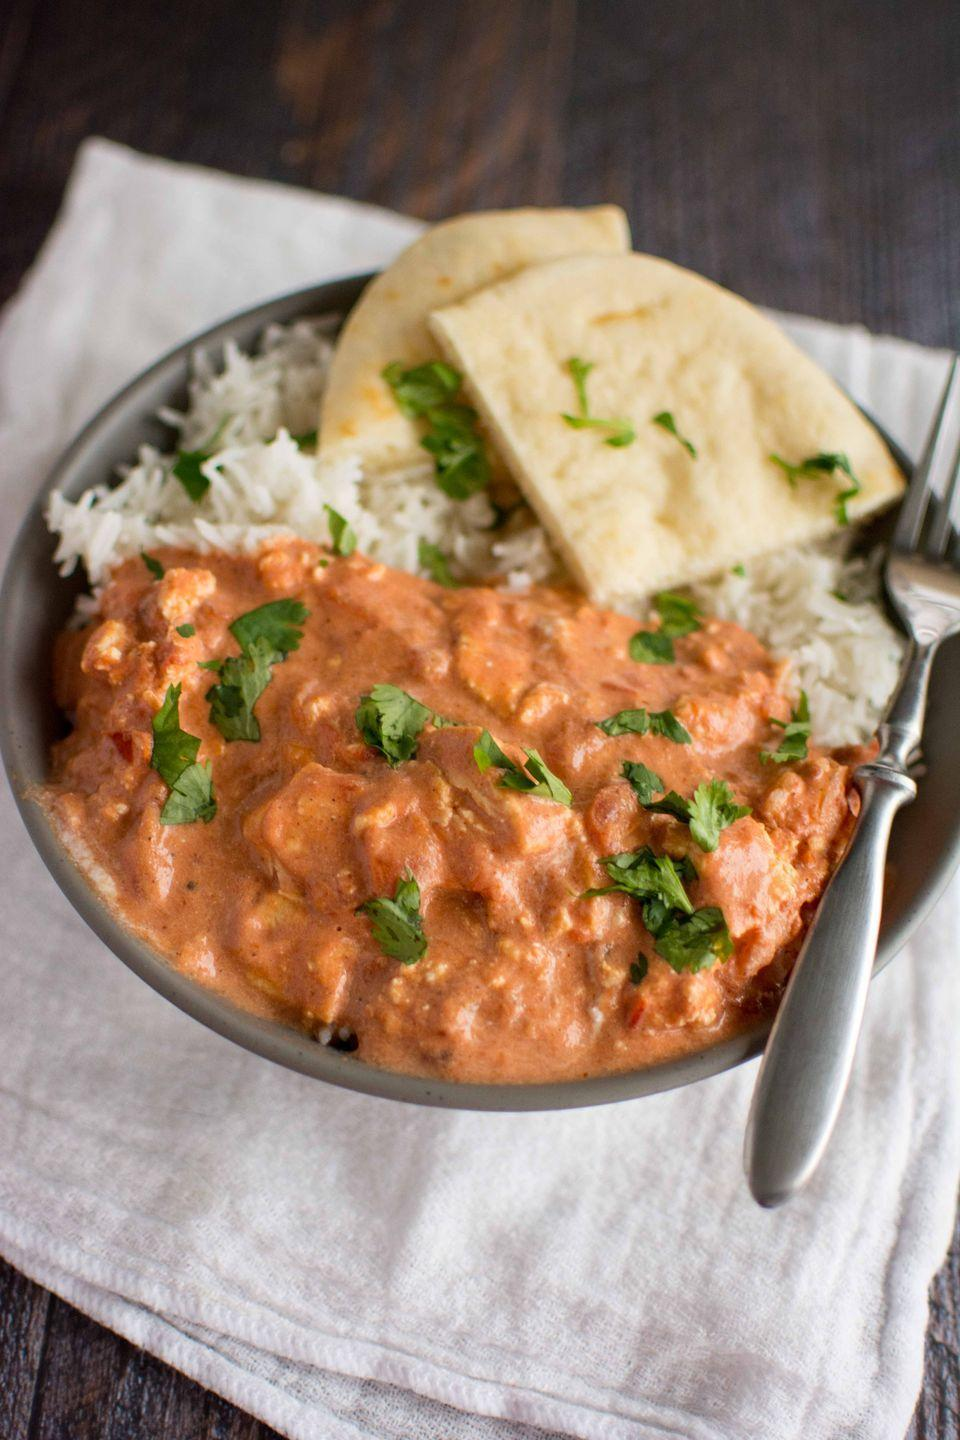 """<p>This sauce is everything.</p><p>Get the recipe from <a href=""""http://slowcookergourmet.net/slow-cooker-paneer-makhani/"""" rel=""""nofollow noopener"""" target=""""_blank"""" data-ylk=""""slk:Slow Cooker Gourmet"""" class=""""link rapid-noclick-resp"""">Slow Cooker Gourmet</a>.</p>"""